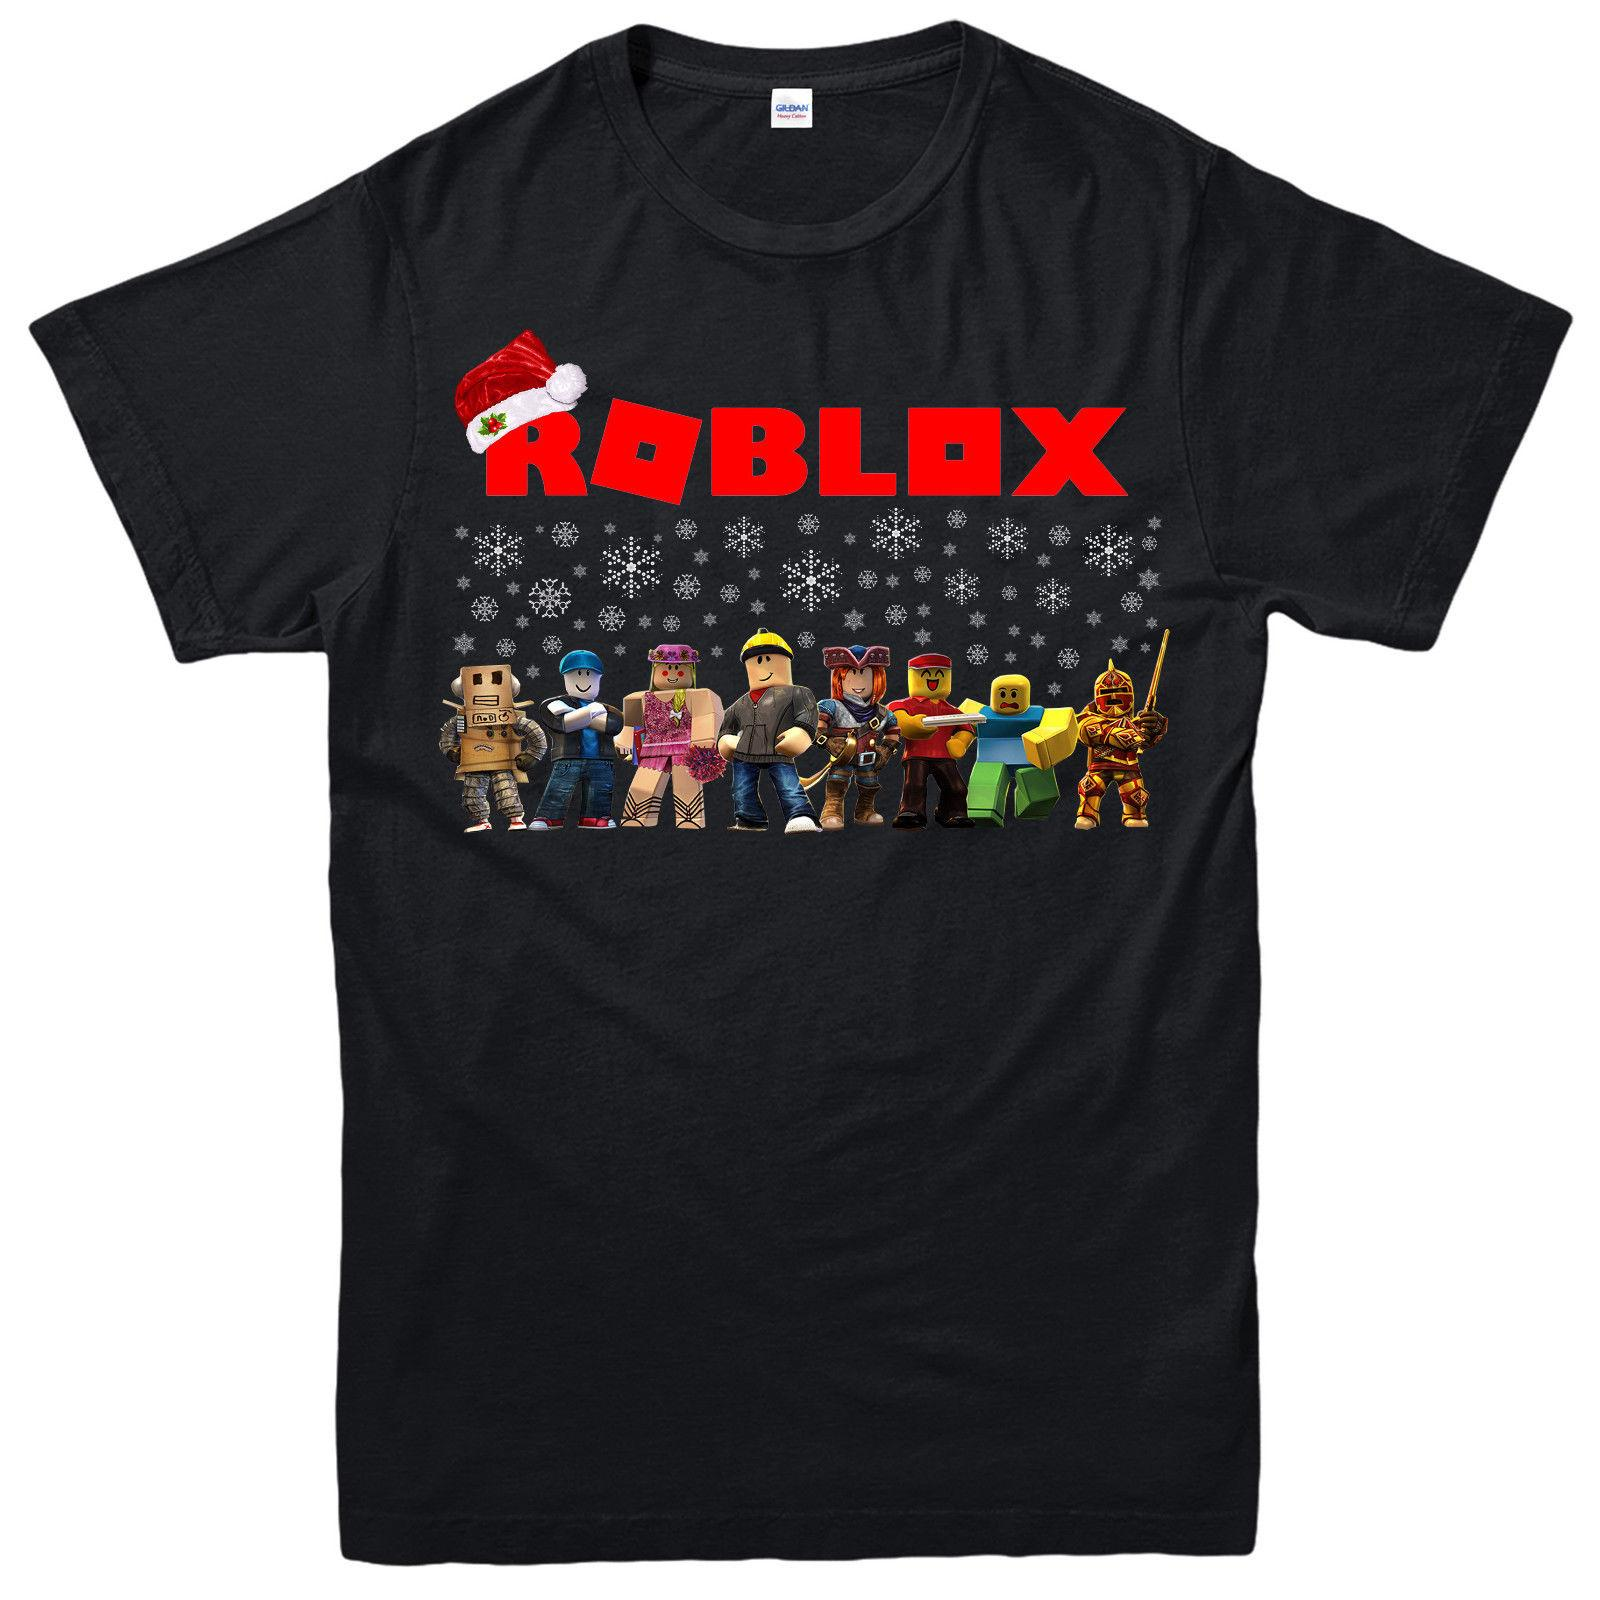 Shirt Unisex T Gift Children Roblox Gamers Family Christmas kZTOuPXi